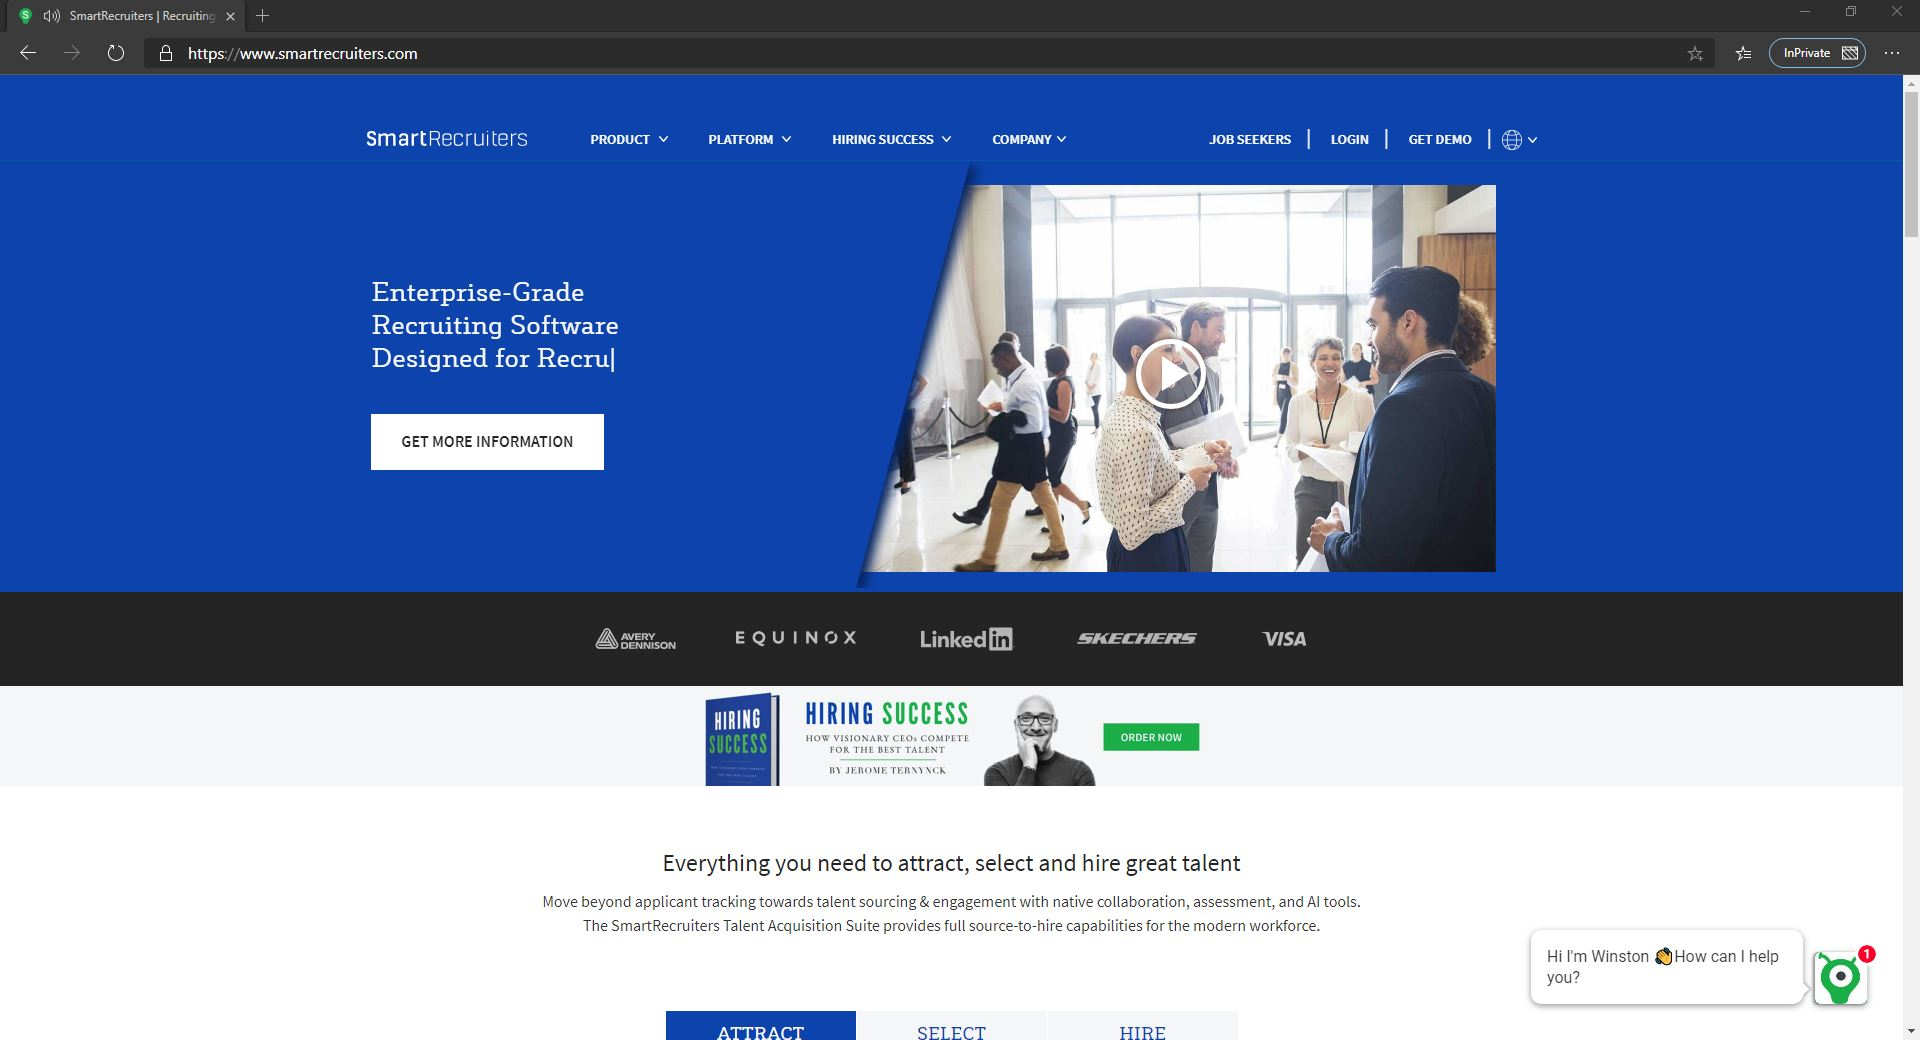 10 Best Recruiting Software For Small Businesses & Startups Companies-Smart Recruiter-Fig 1